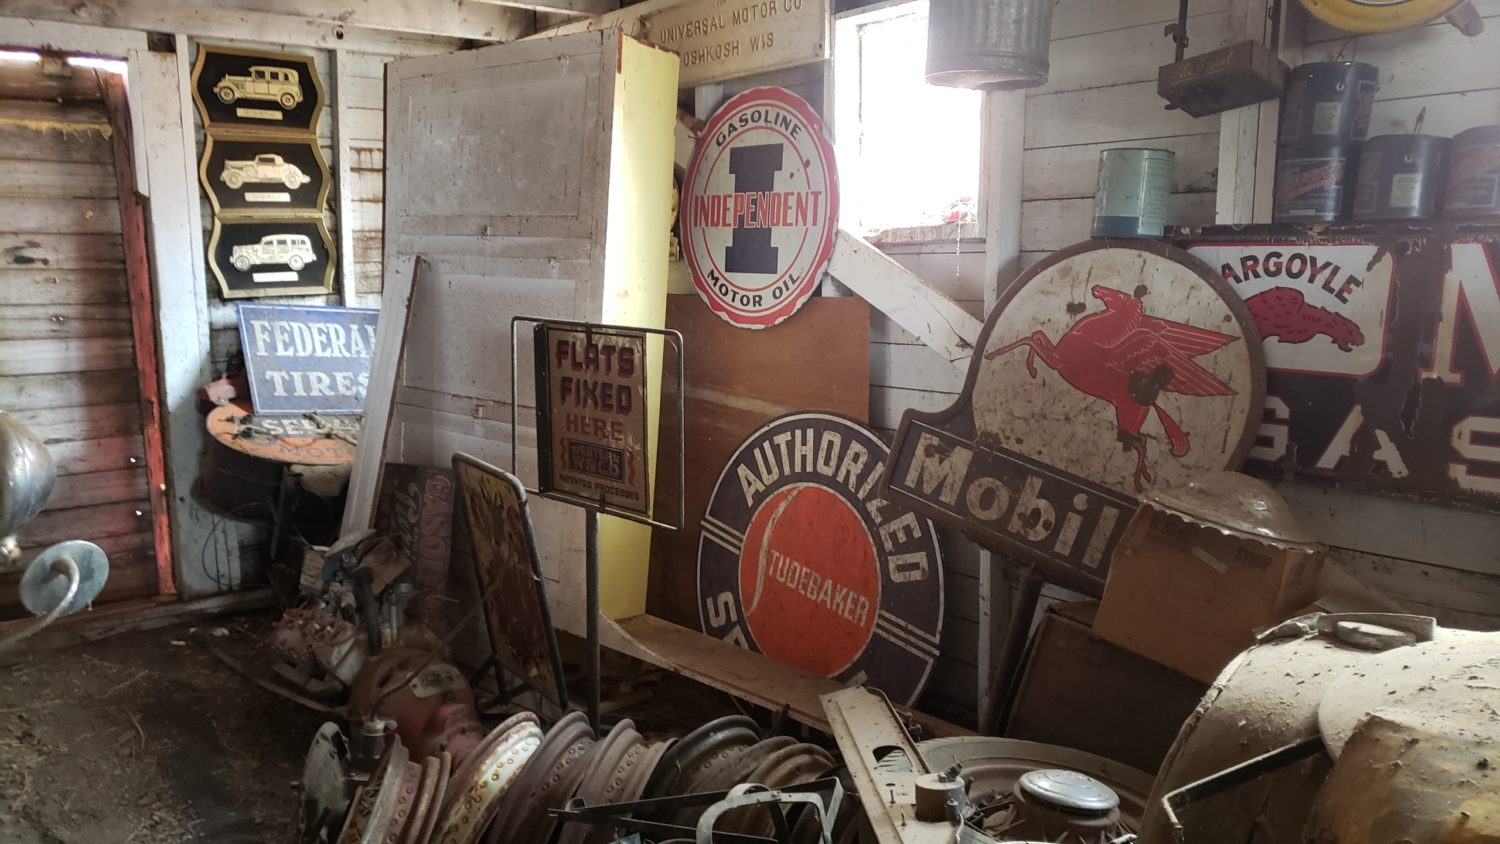 Fabulous Collector Cars, Antique Tractors, Memorabilia & More! The Krinke Collection - image 8